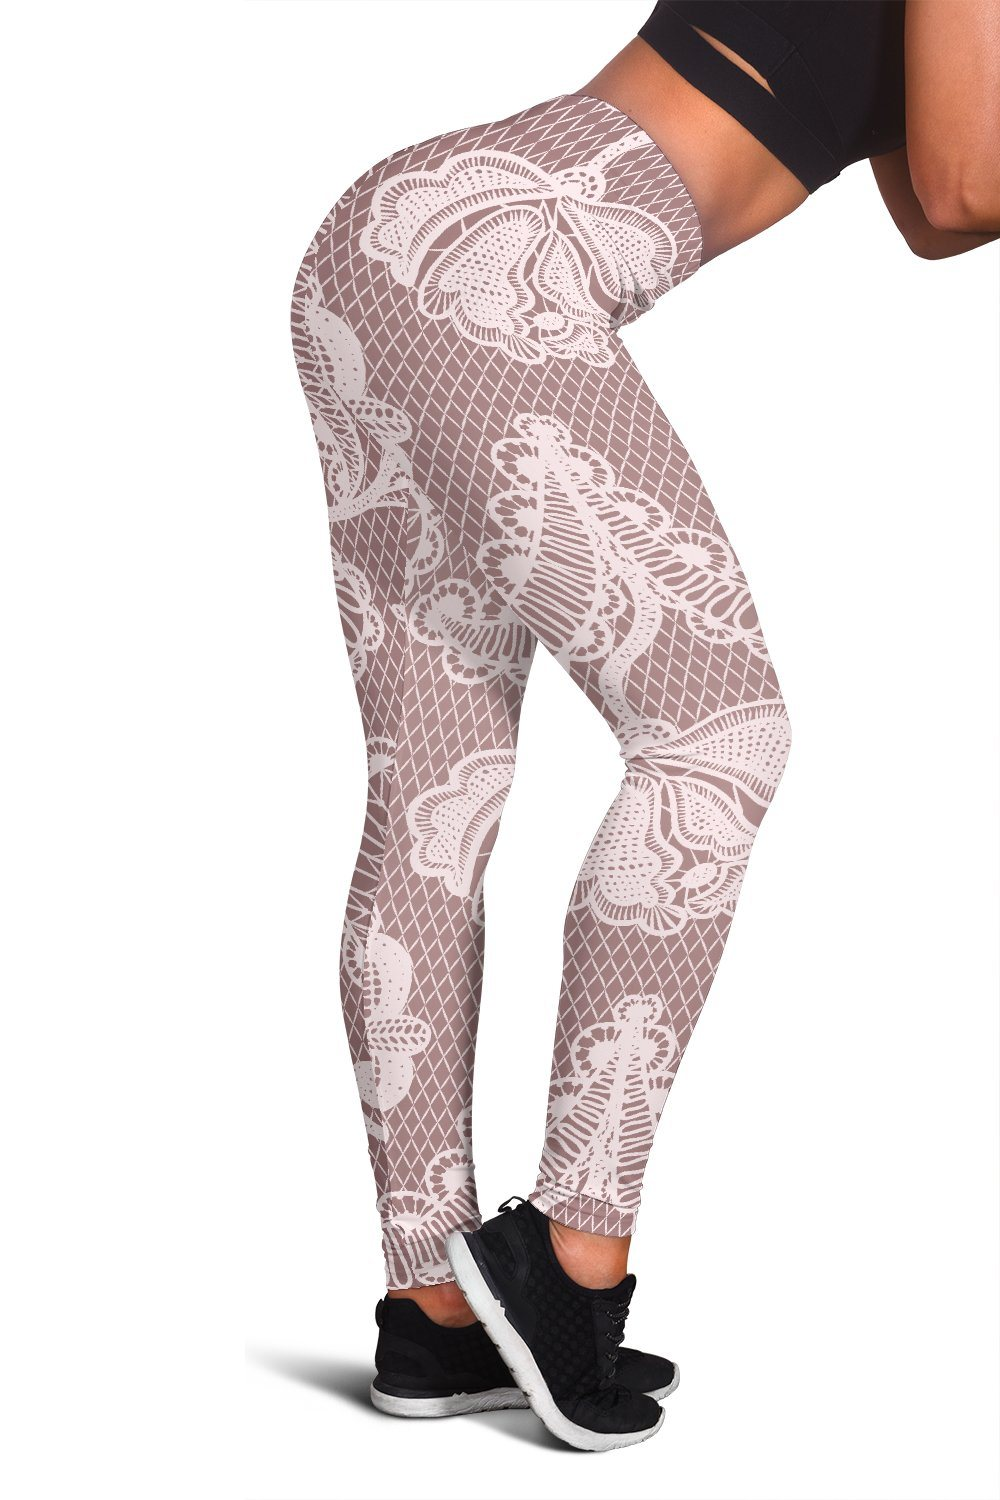 Vintage White Lace Womens Leggings